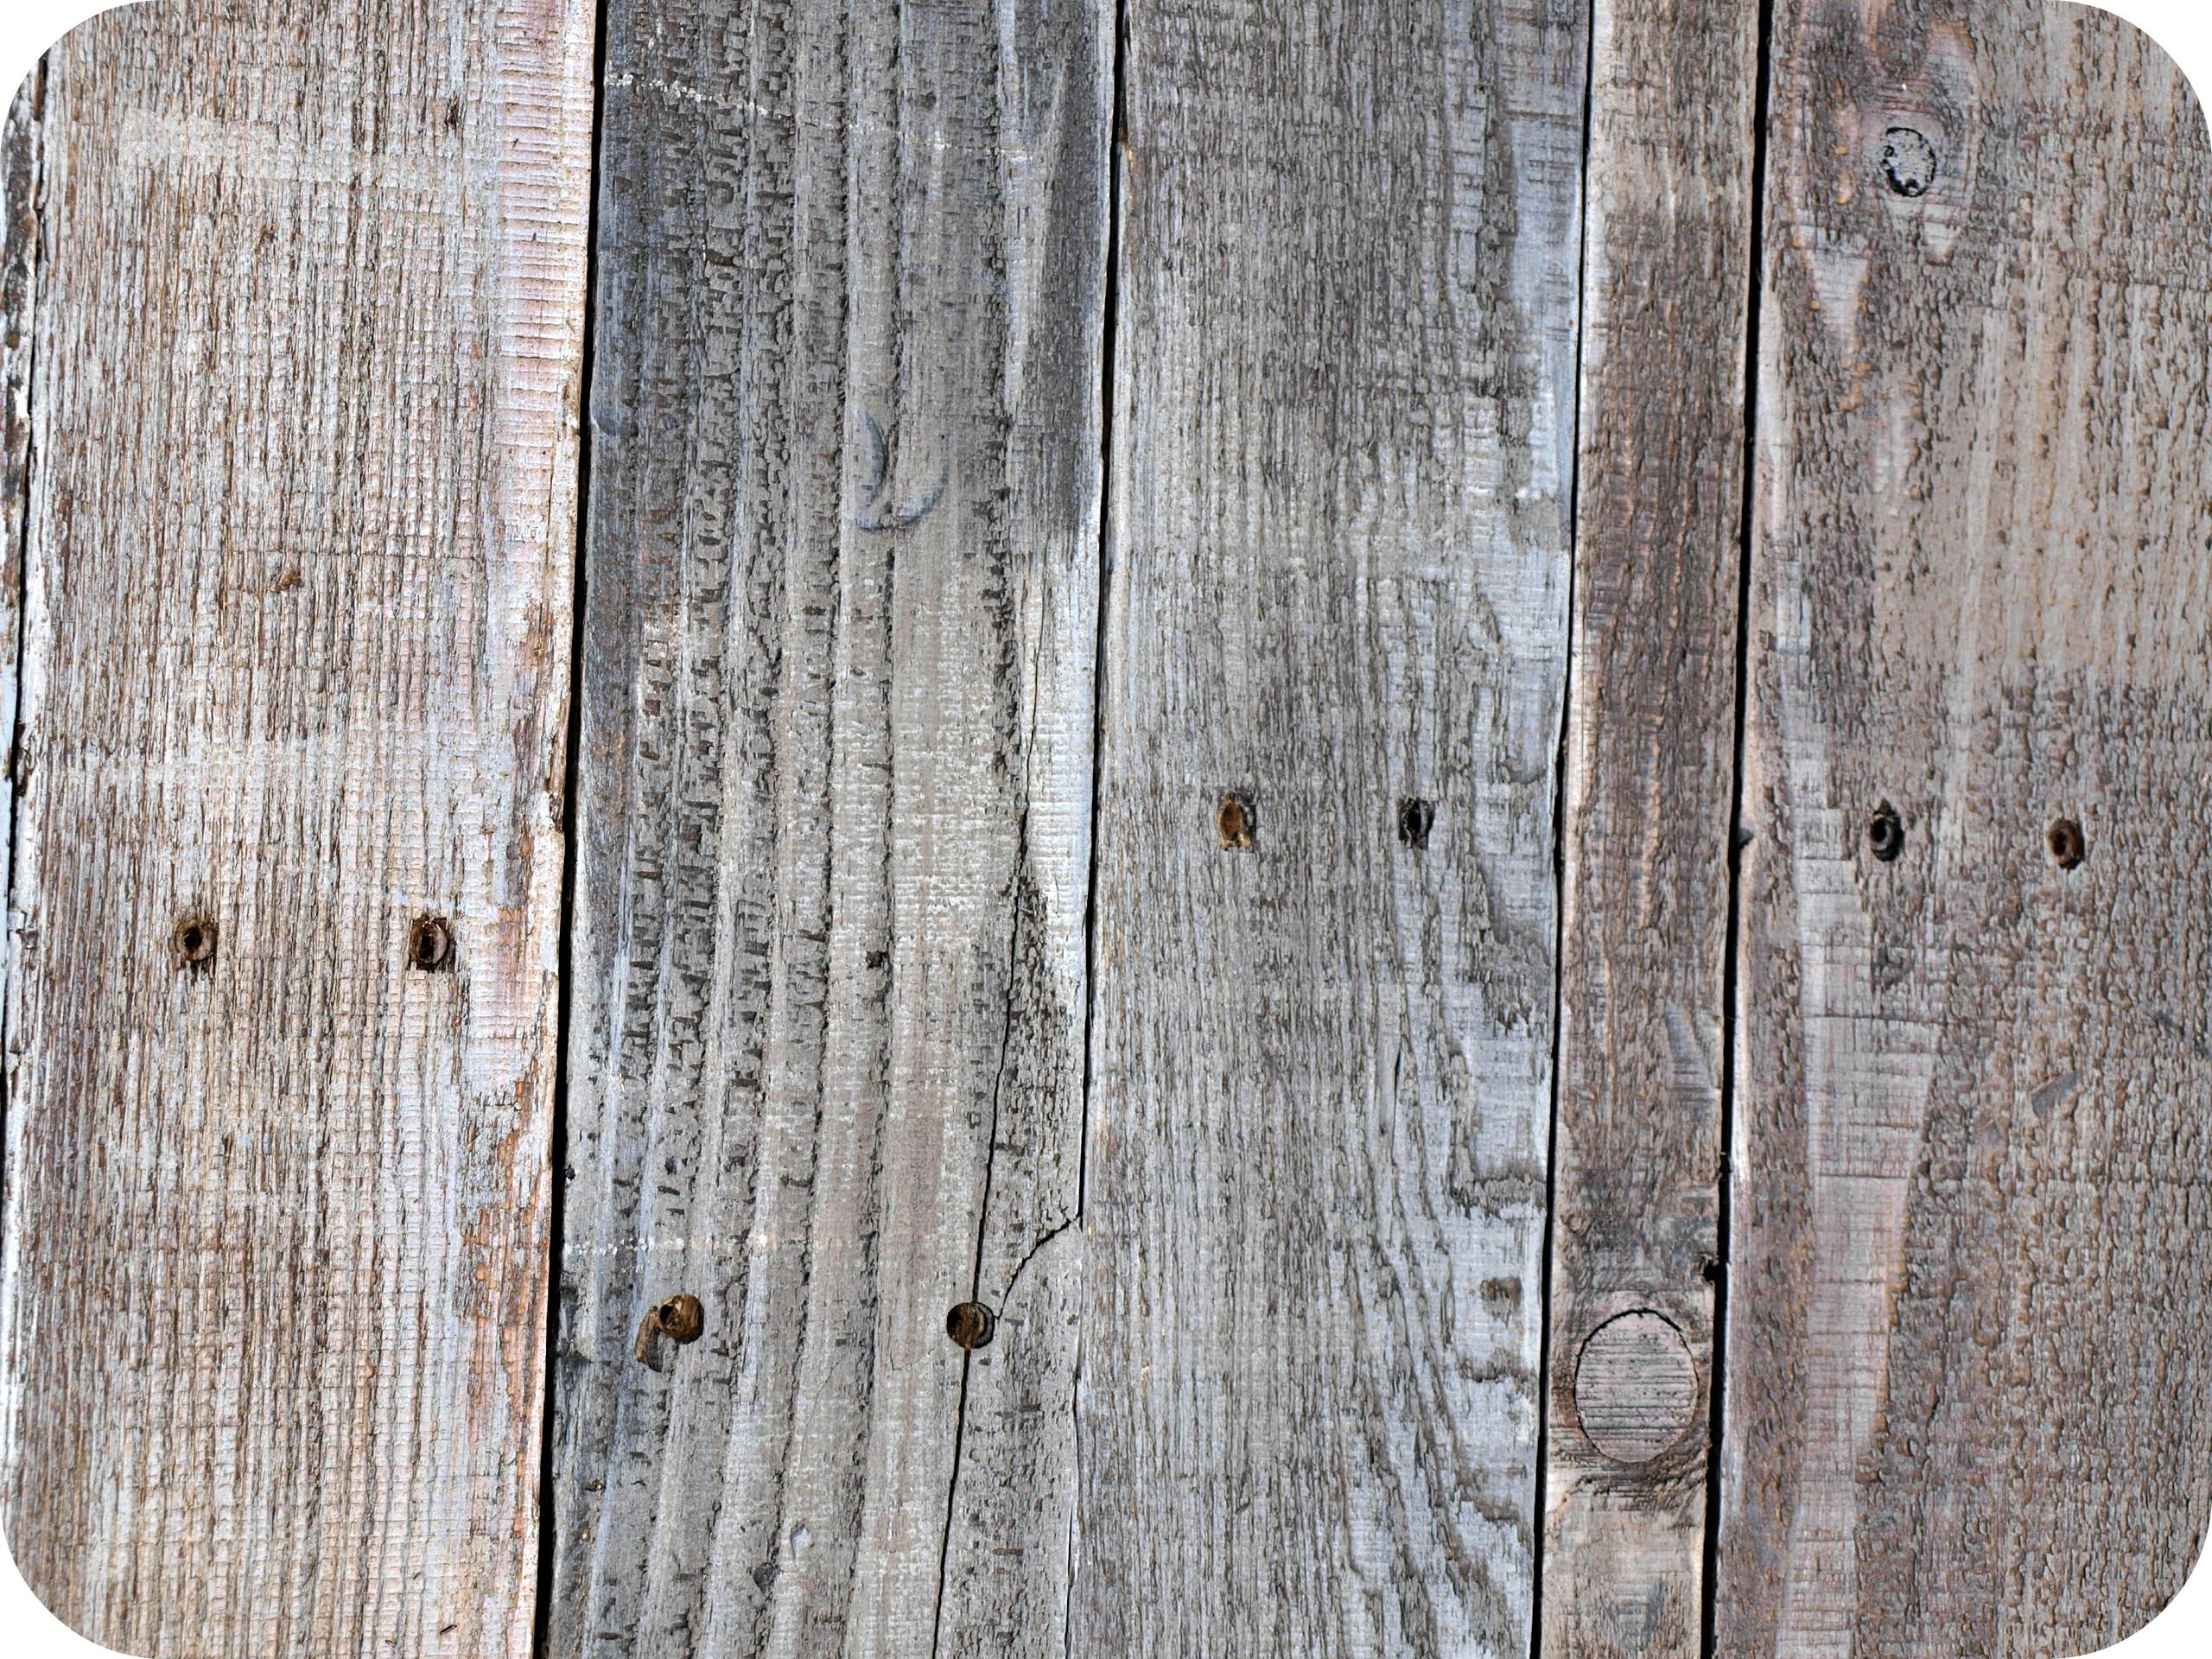 How To Age Wood With Paint And Stain Projects To Try